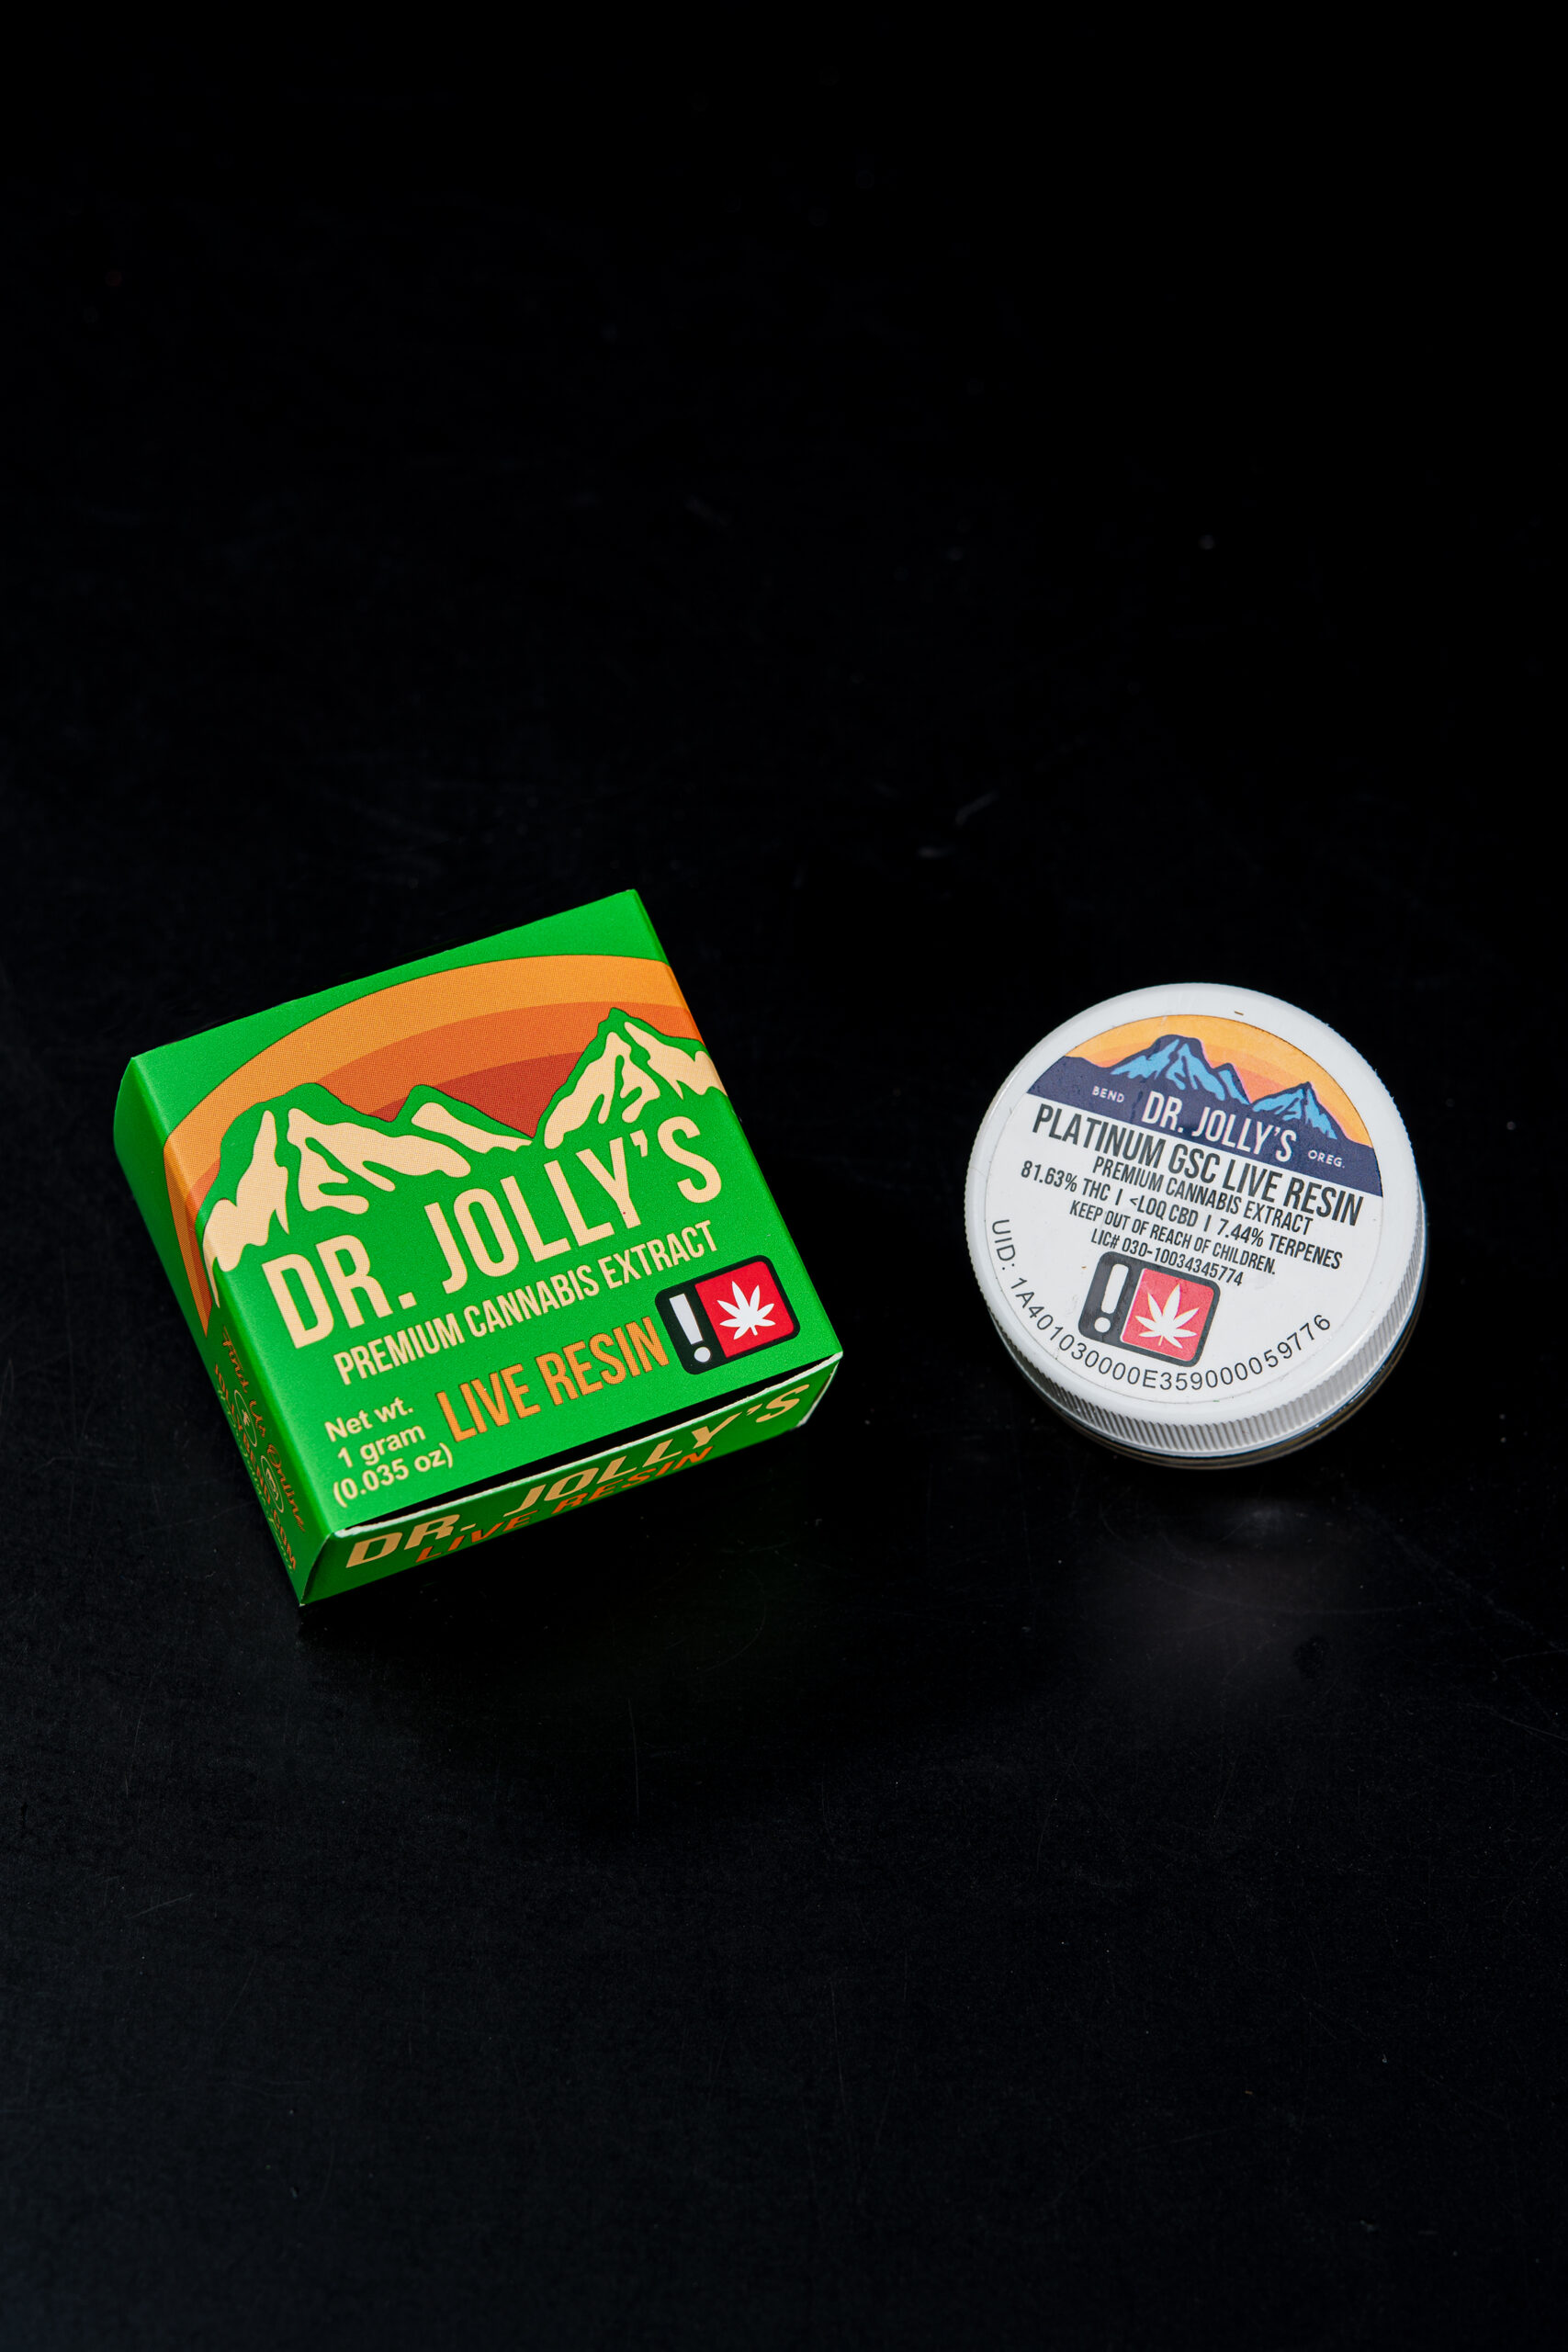 Dr. Jolly's Platinum GSC cannabis live resin packaging